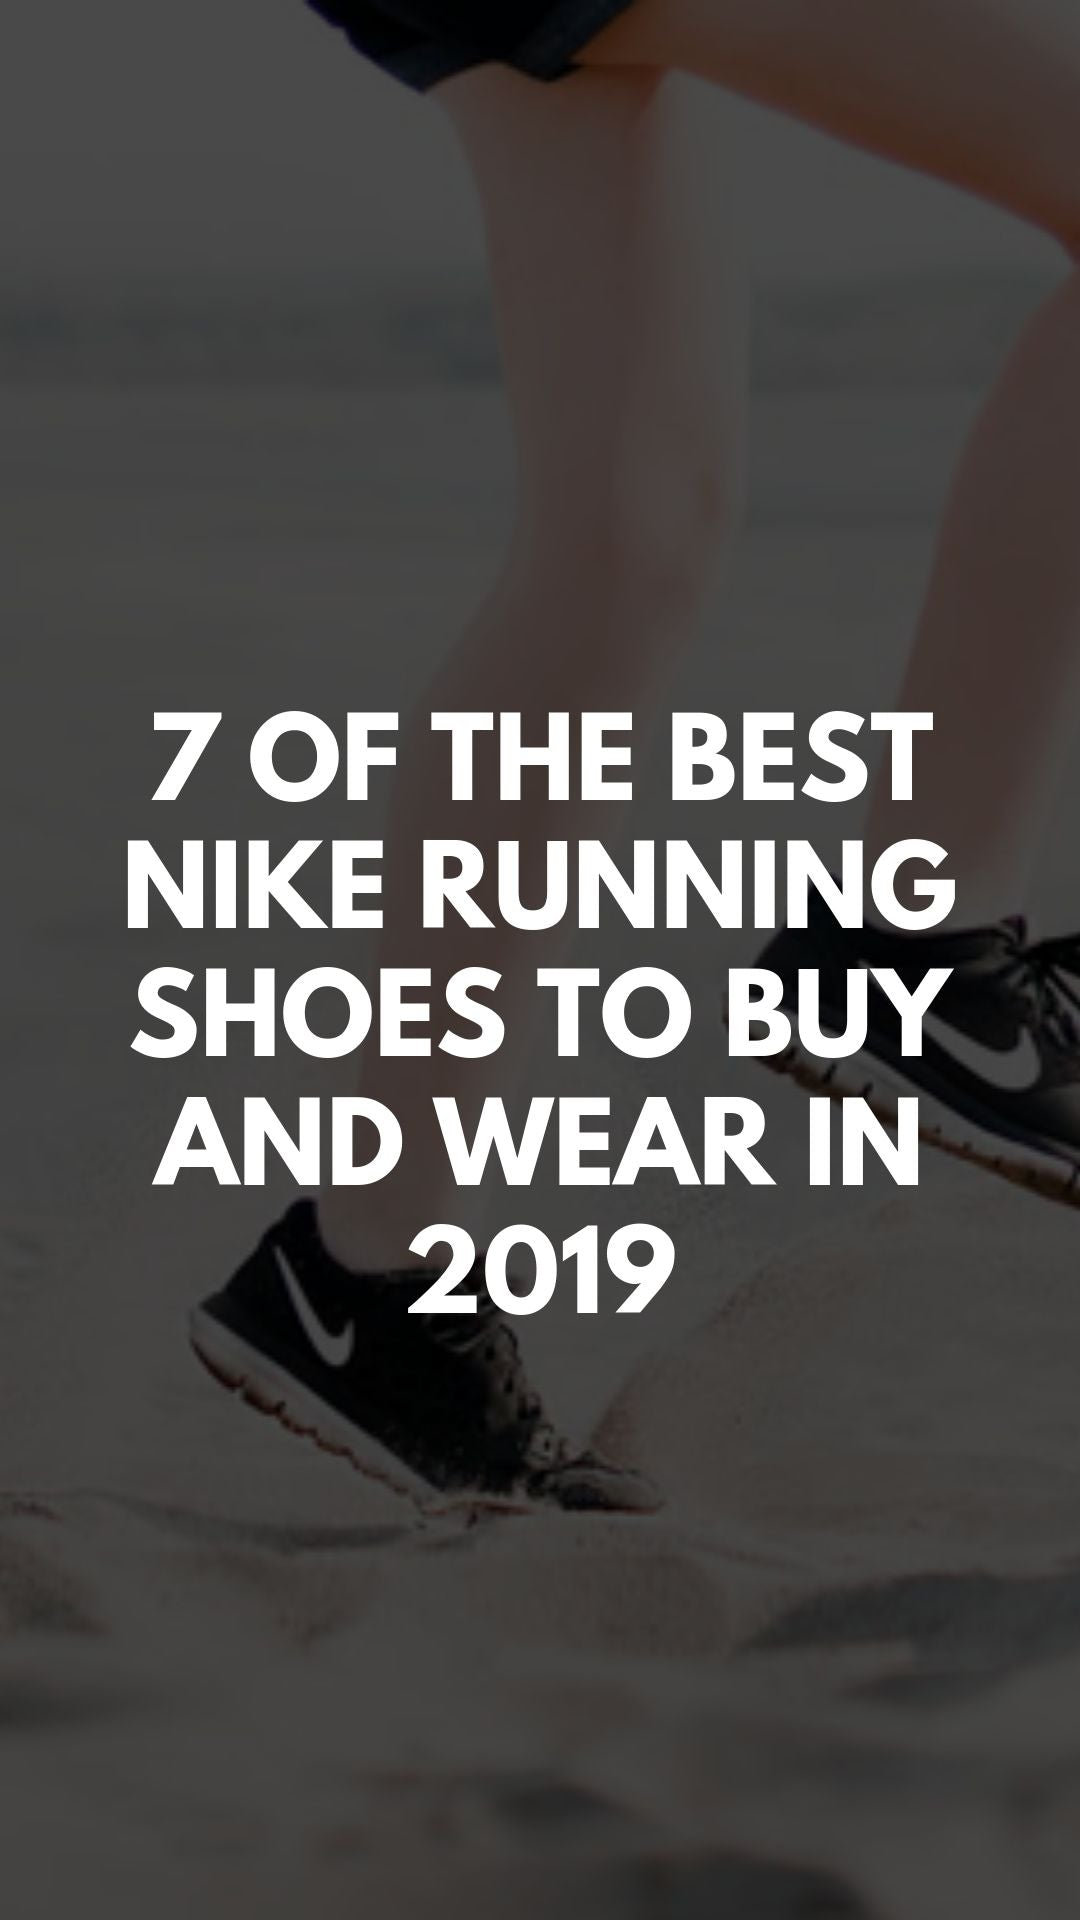 7 of the Best Nike Running Shoes to Buy and Wear in 2019